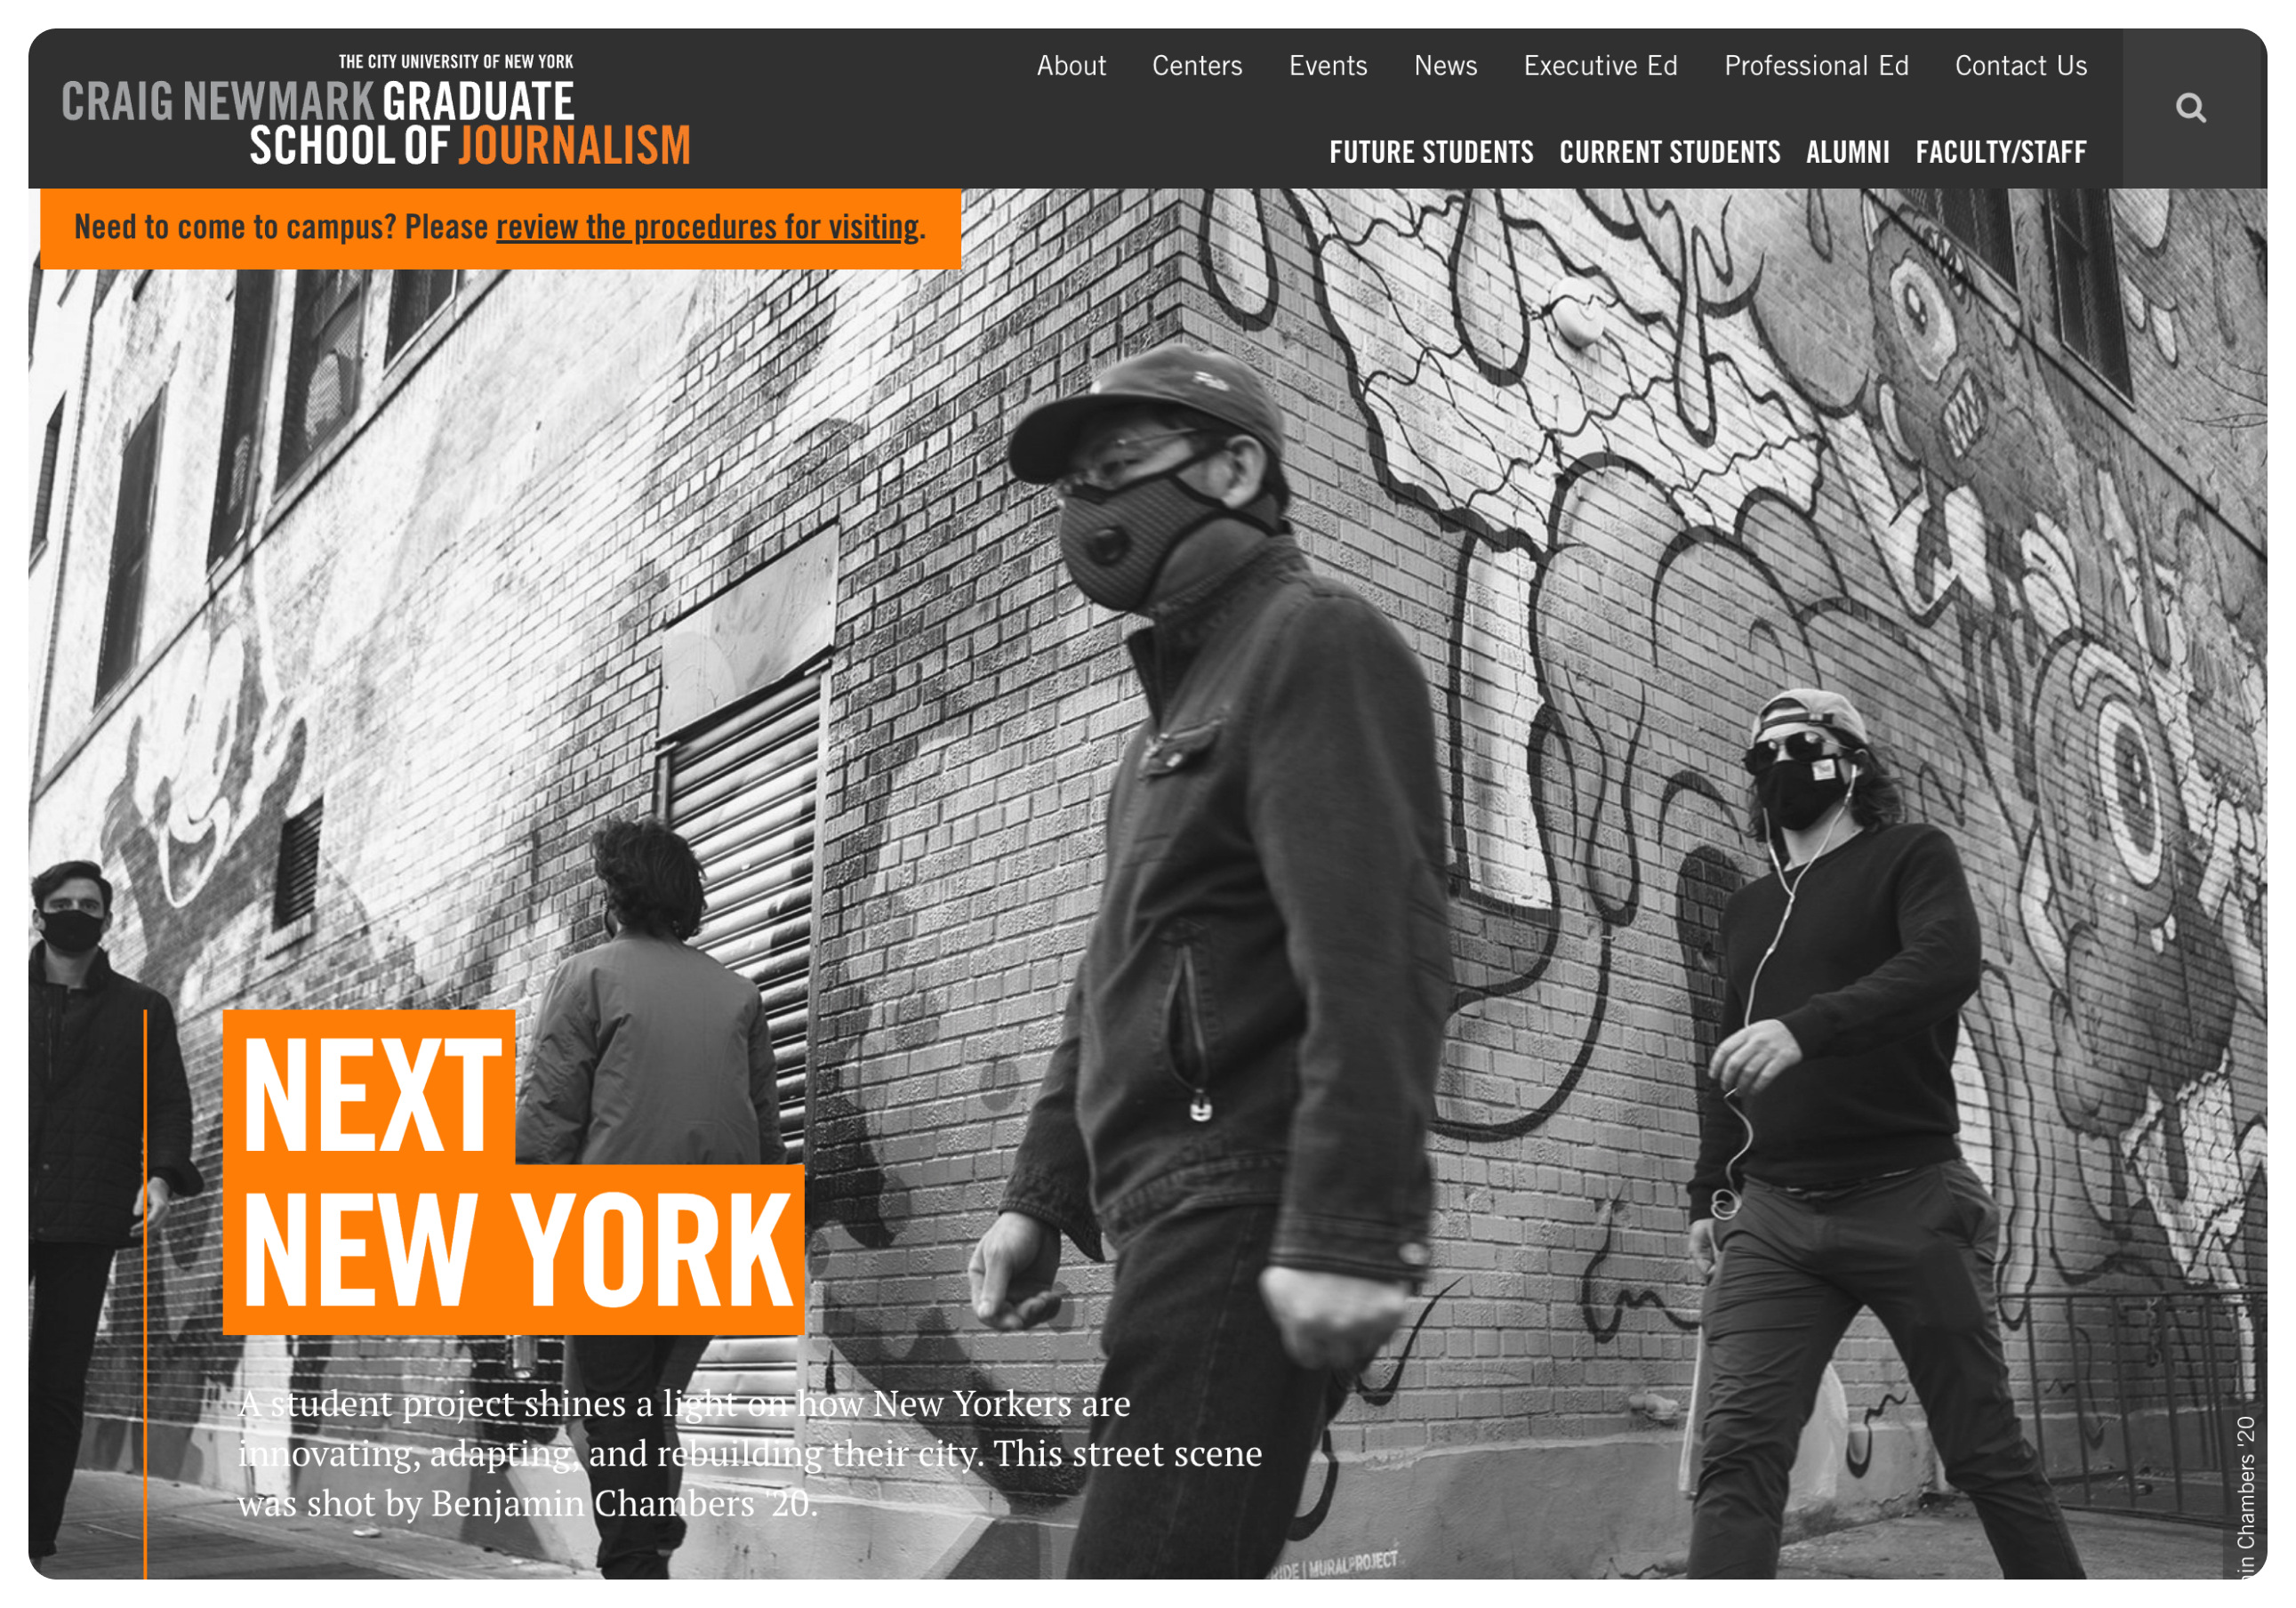 Cuny School of Journalism home page